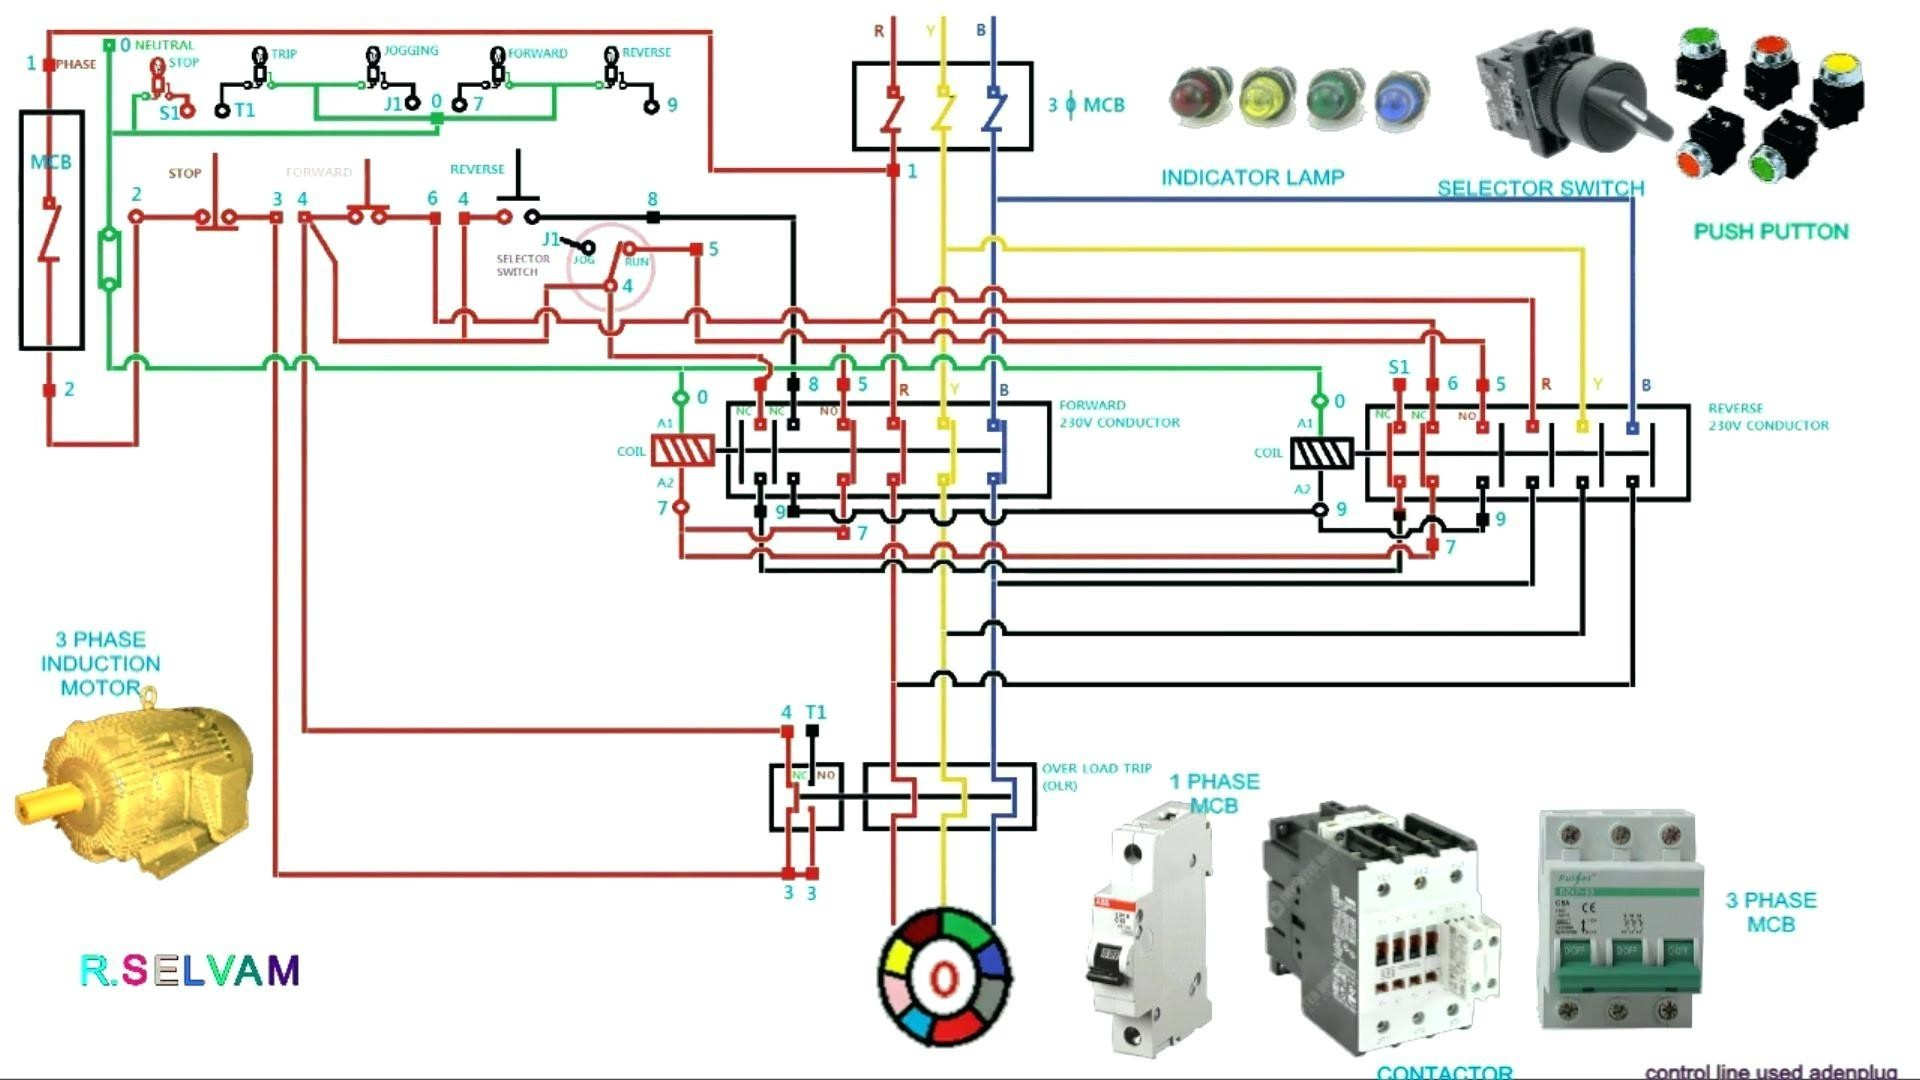 3 Phase Wiring Diagram House Valid Circuit Diagram Contactor Best 3 Phase Motor Starter Wiring